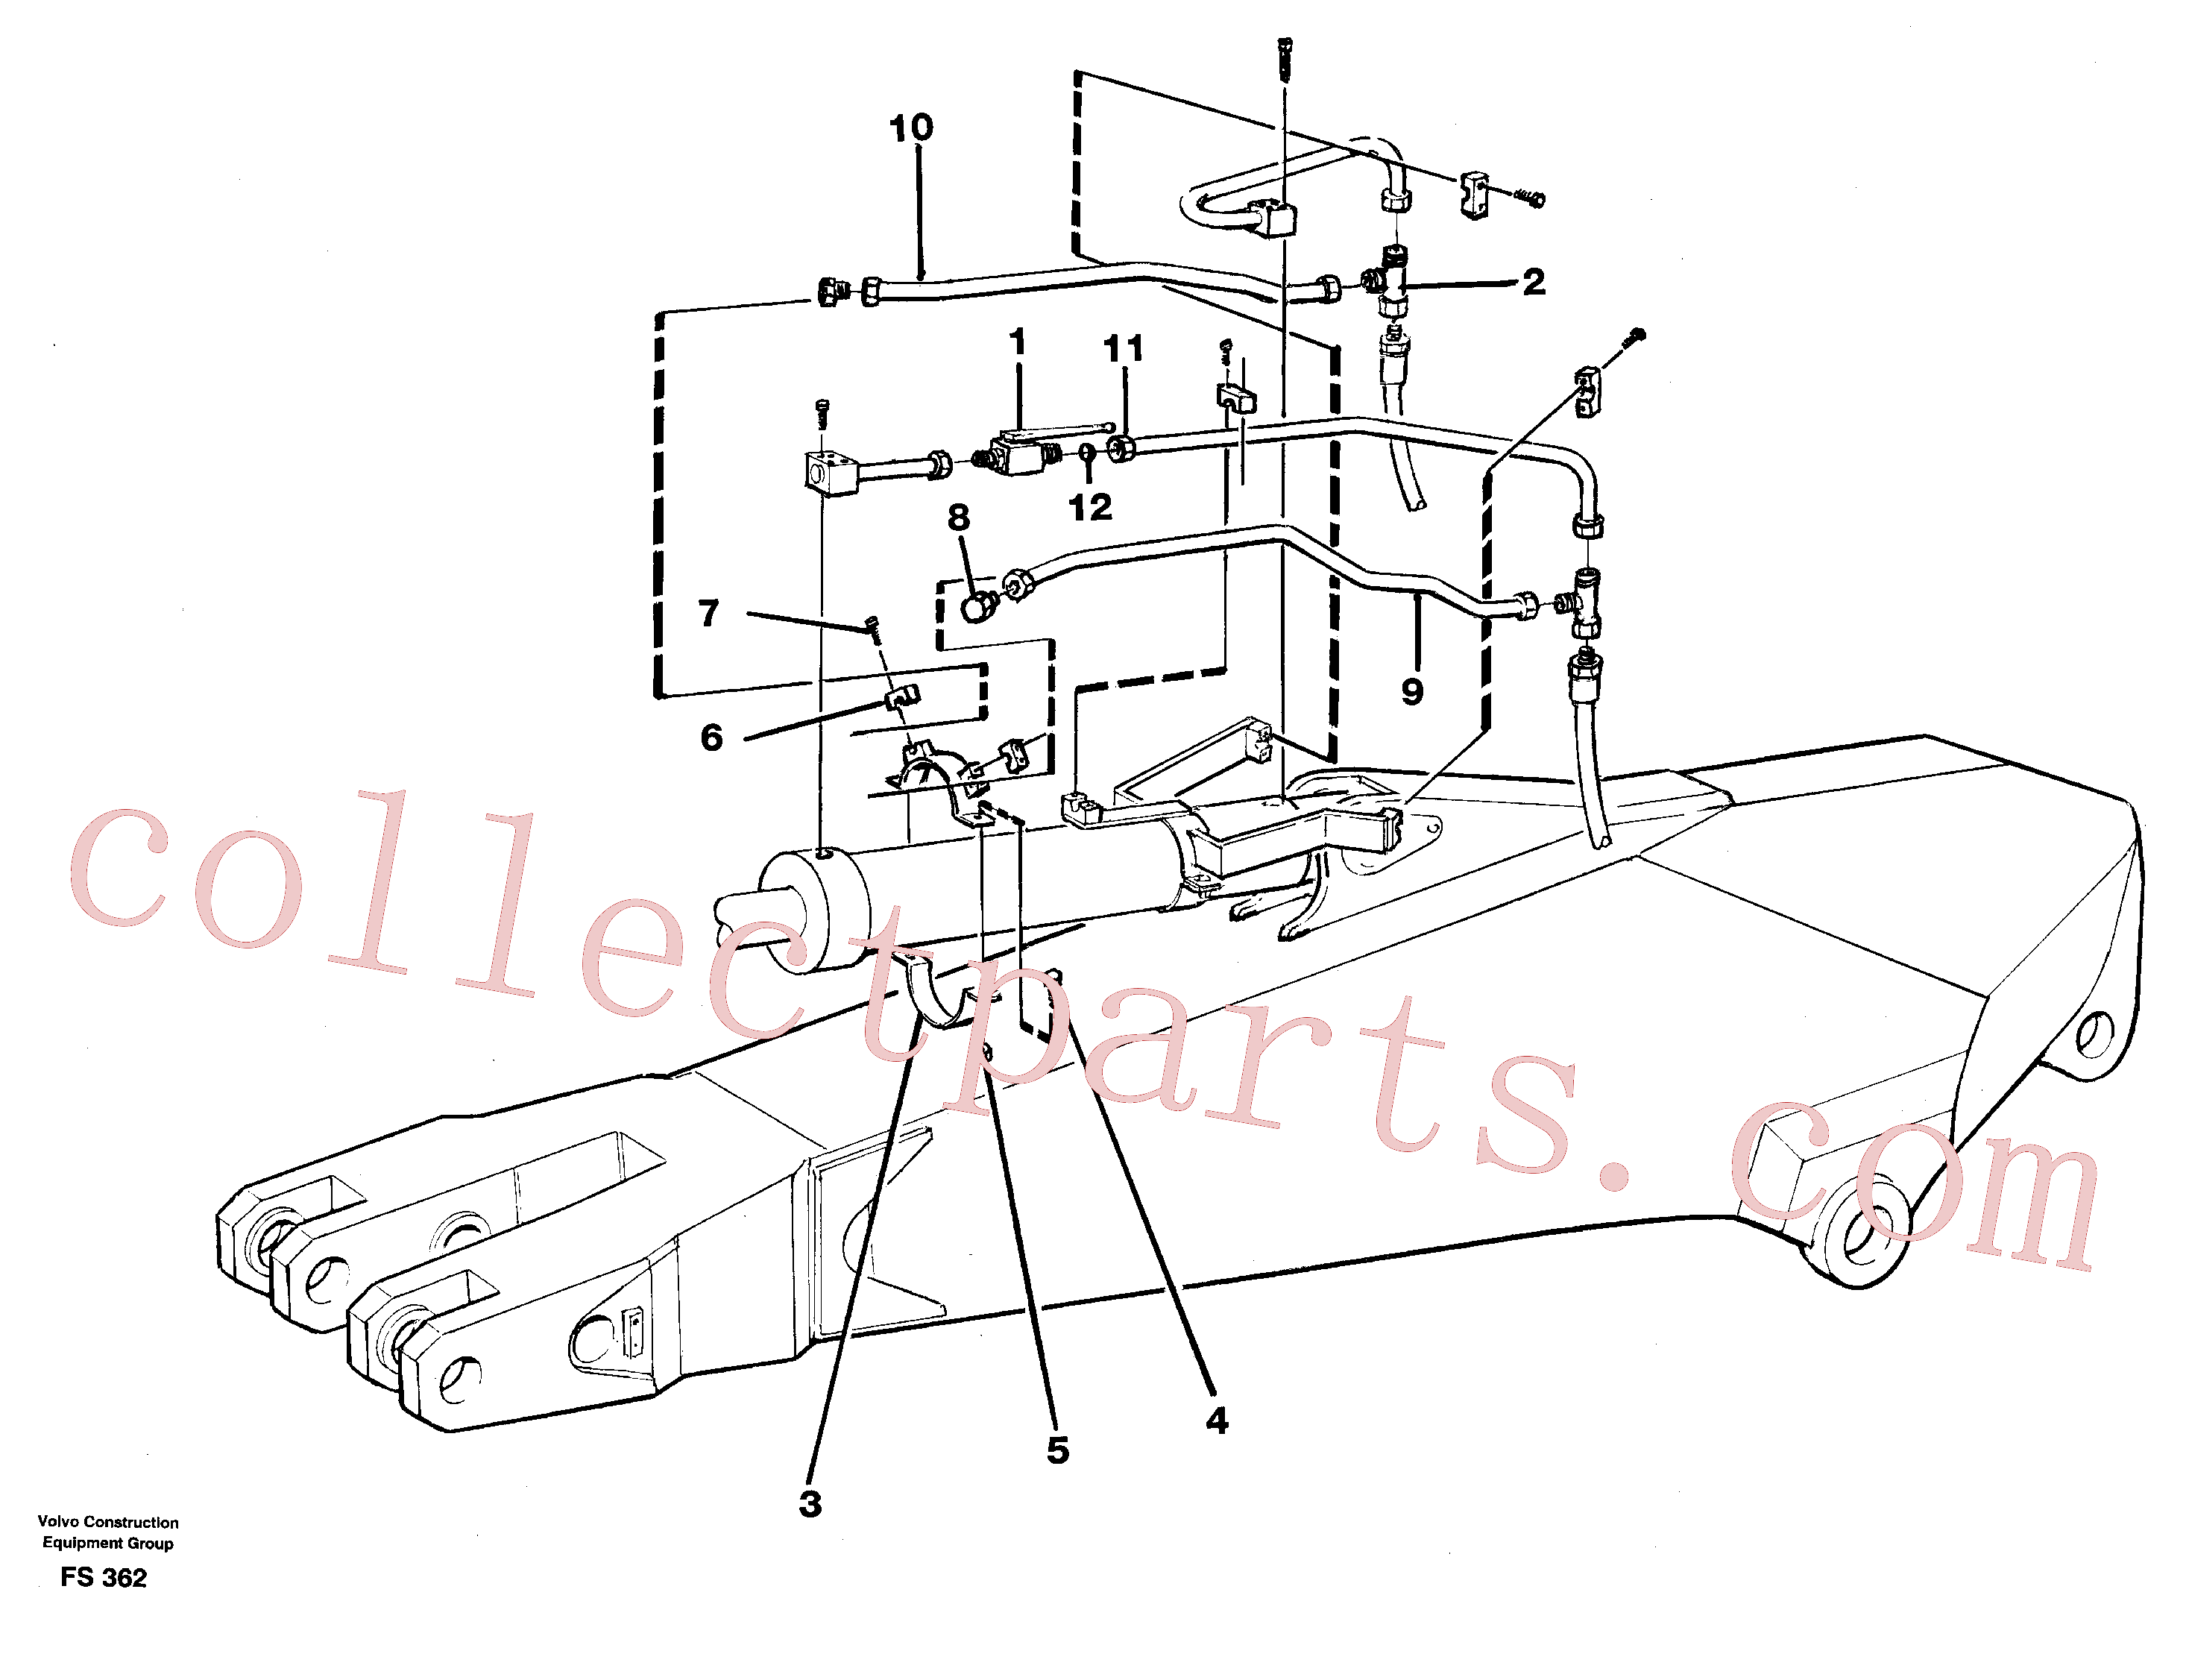 VOE14253786 for Volvo Hydraulics for parallel connected clamshell equipon dipper arm 2.50/3.50 M(FS362 assembly)